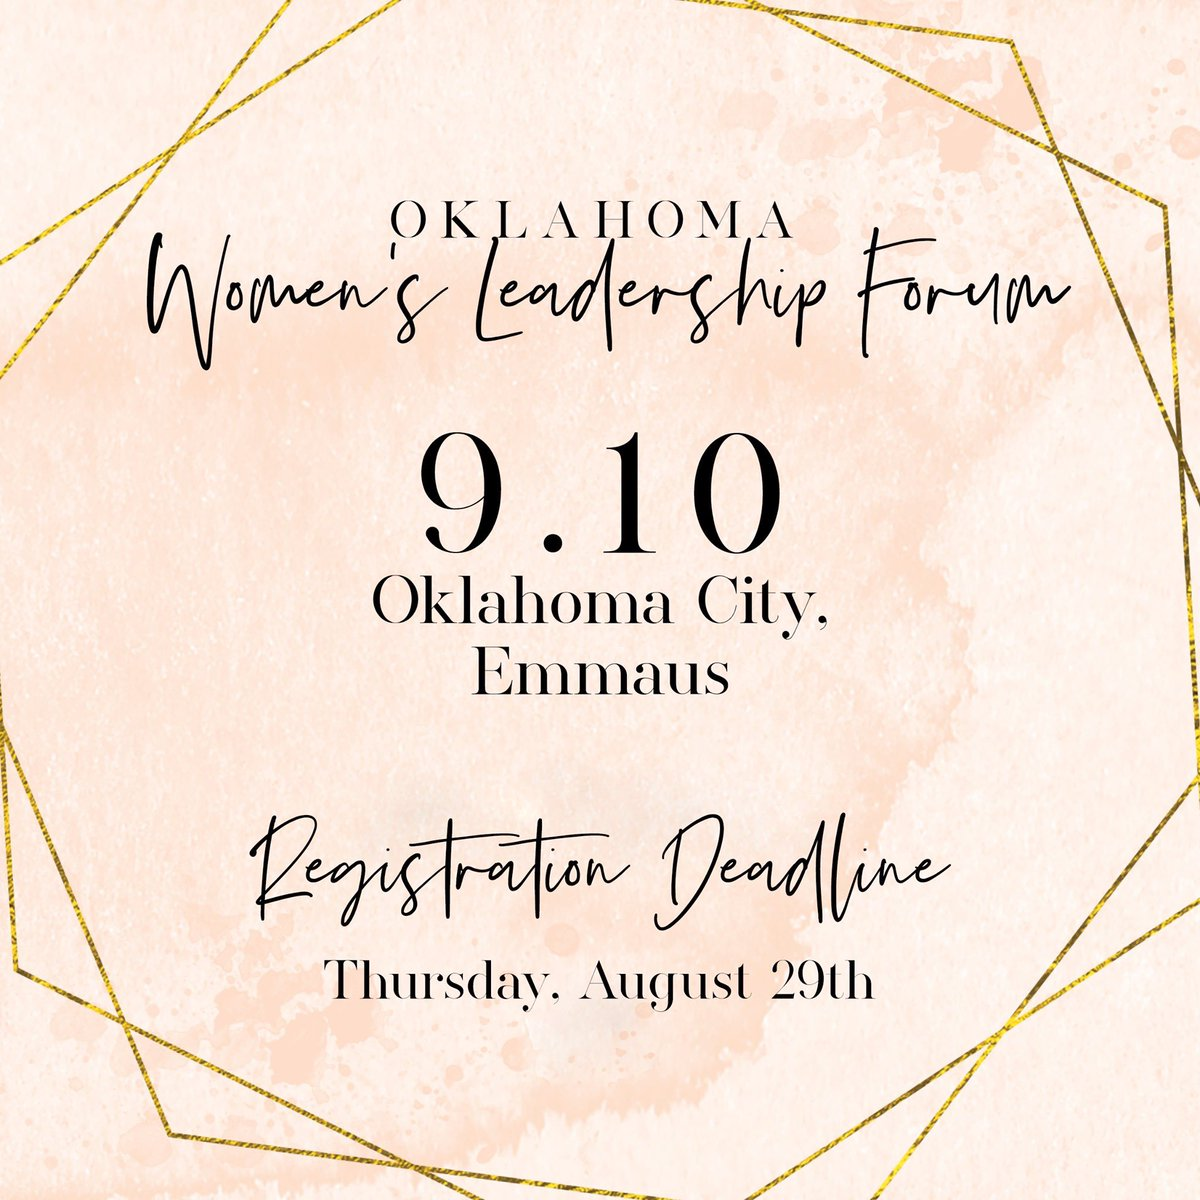 test Twitter Media - We are getting excited about September! The registration deadline for the OKC event is this Thursday. Invite your entire women's team to join you! https://t.co/jLuGVokCUg https://t.co/L9sOMIr6TE